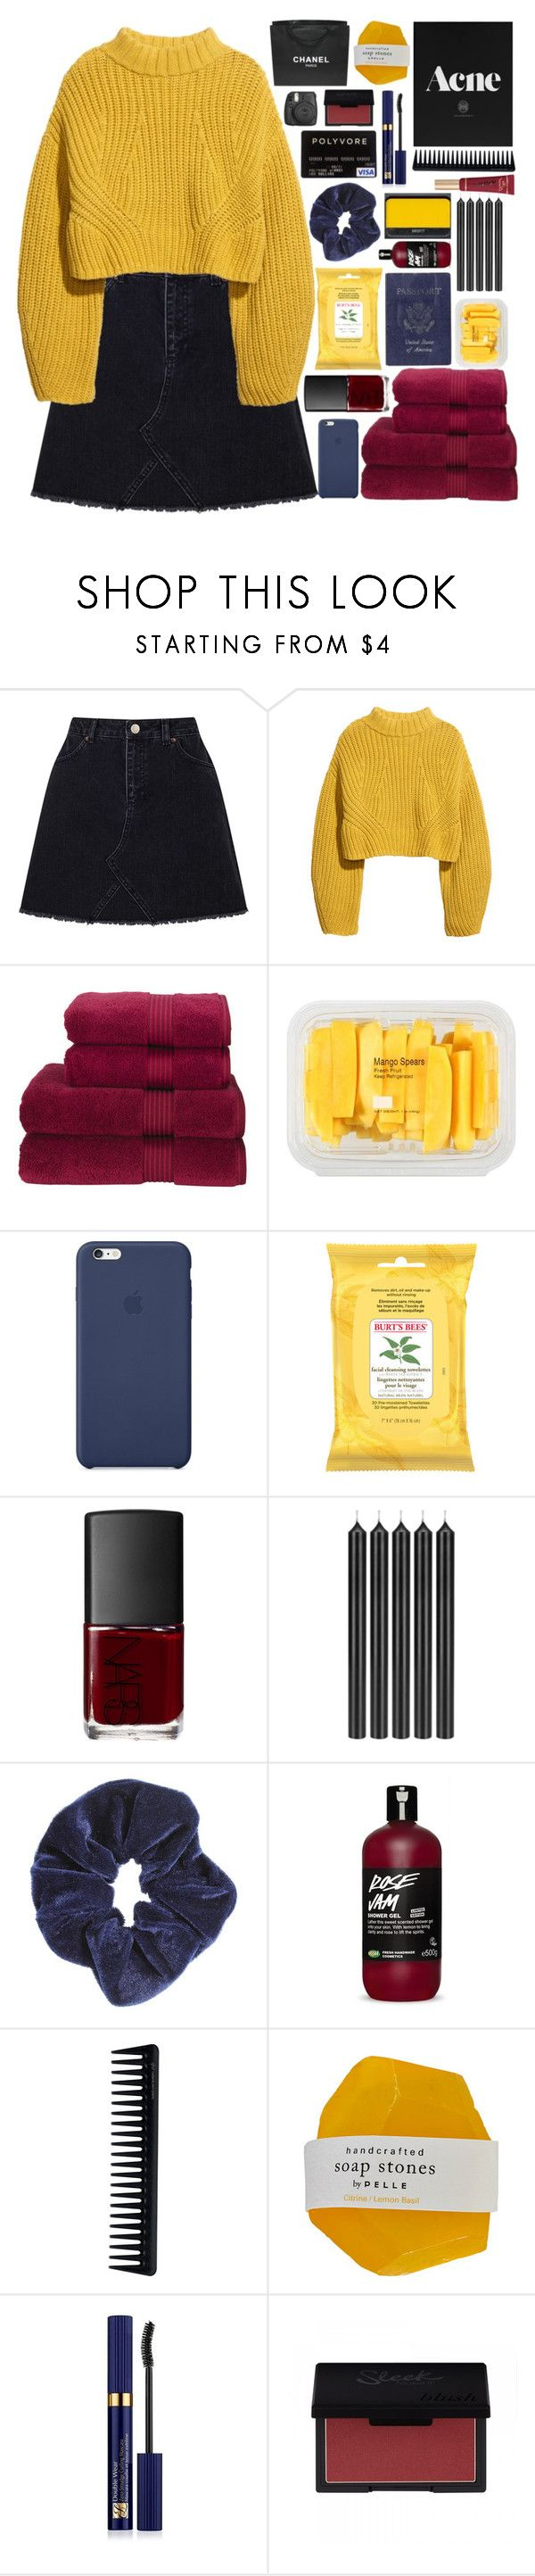 """""""I Should Be The One You Choose"""" by theafergusma ❤ liked on Polyvore featuring Miss Selfridge, H&M, Christy, MANGO, Burt's Bees, NARS Cosmetics, Passport, Tom Dixon, Too Faced Cosmetics and GHD"""